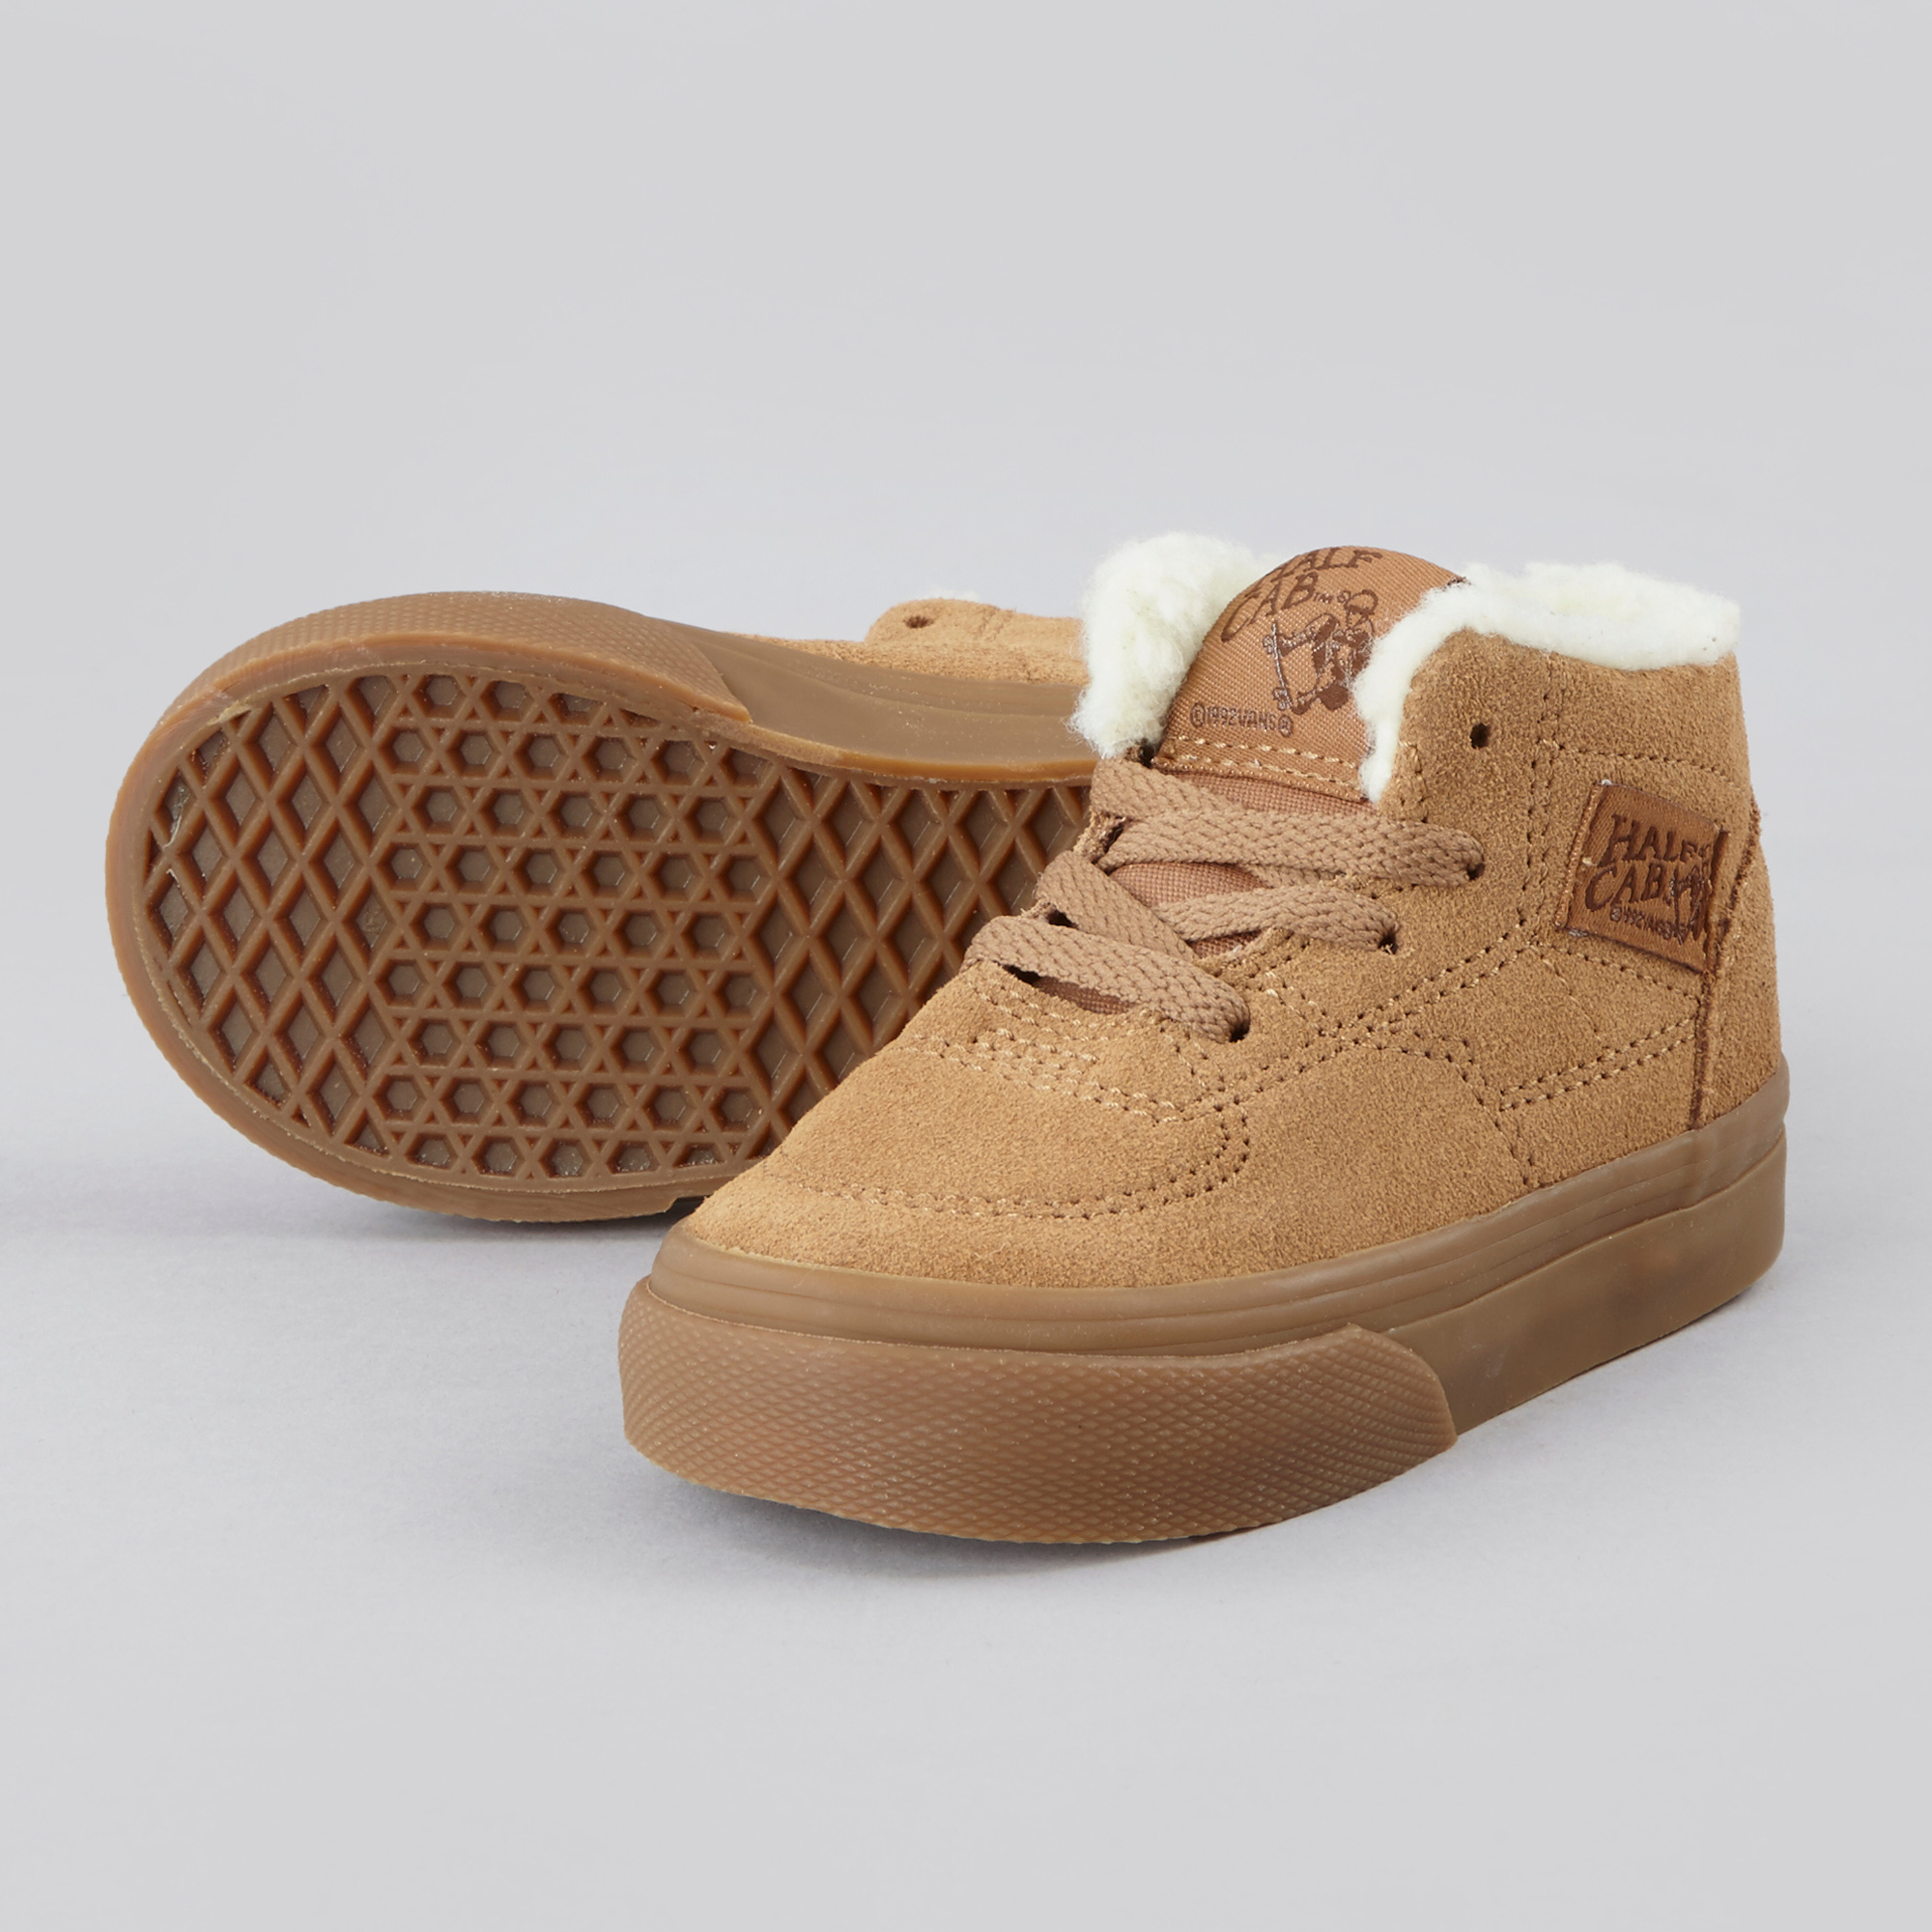 73b2ba0b03 Vans Half Cab - Suede Fleece Tobacco Brown